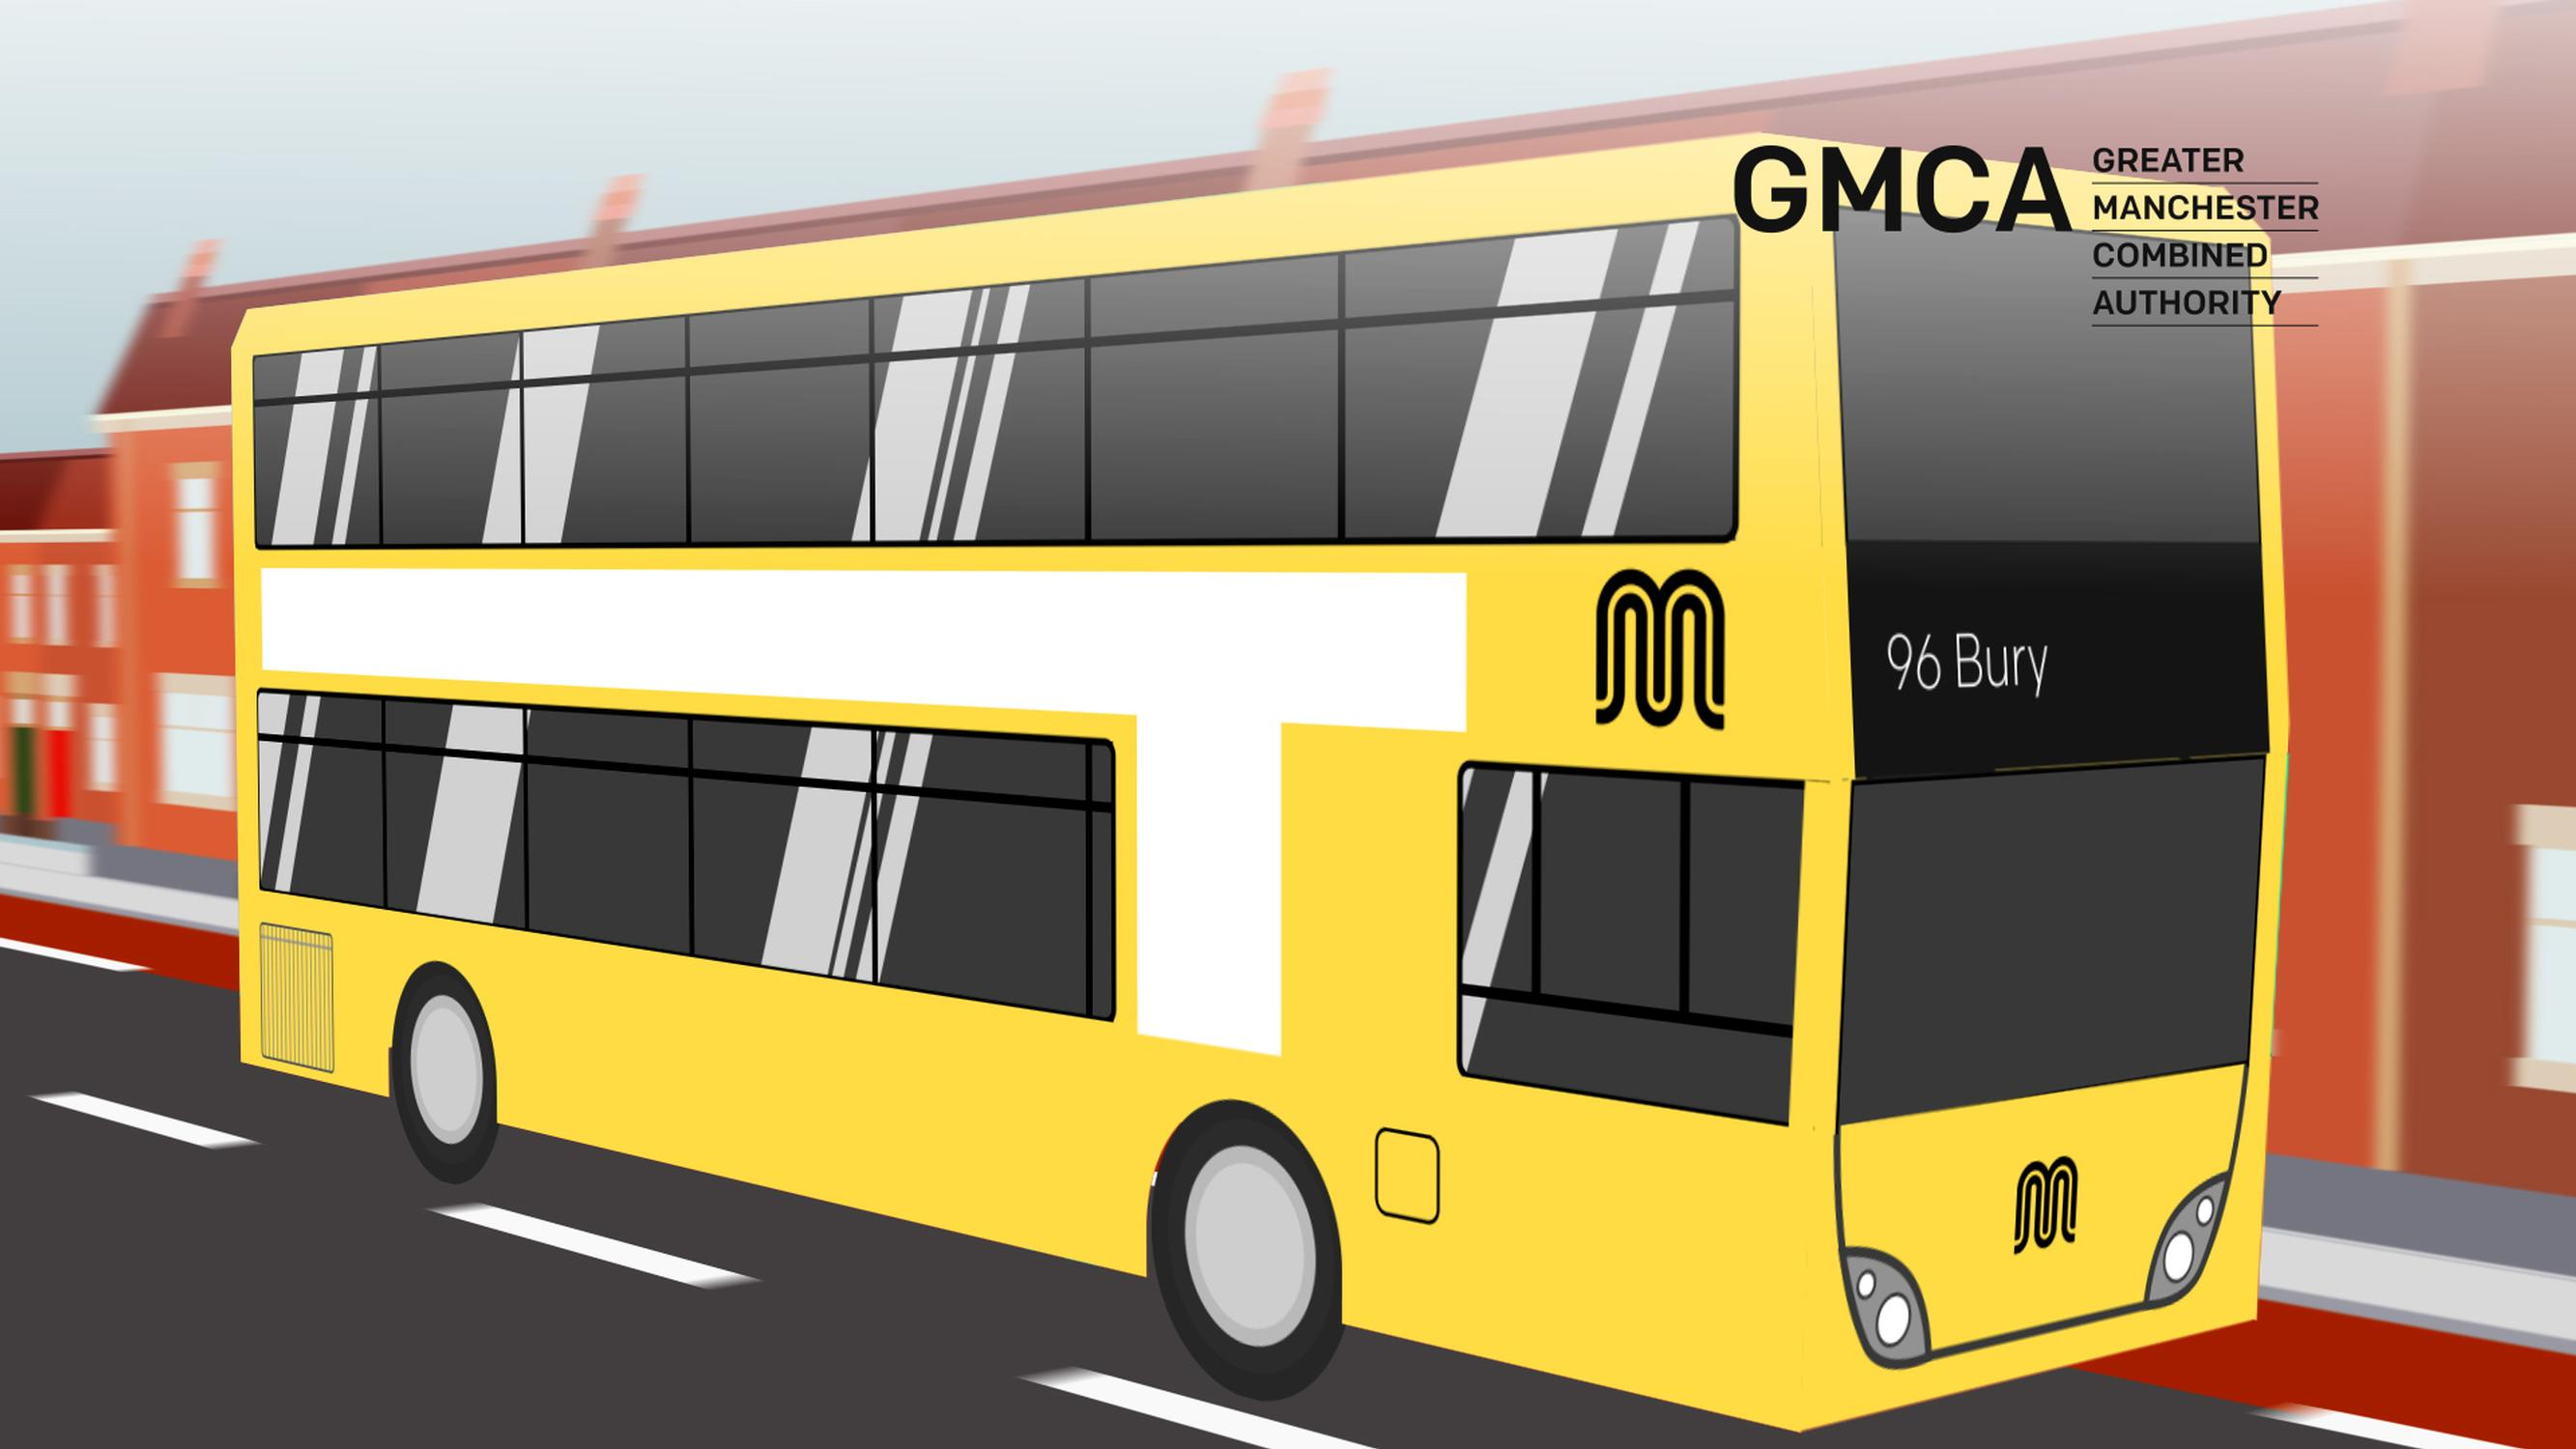 GMCA plans to develop a new identity for Greater Manchester's transport network